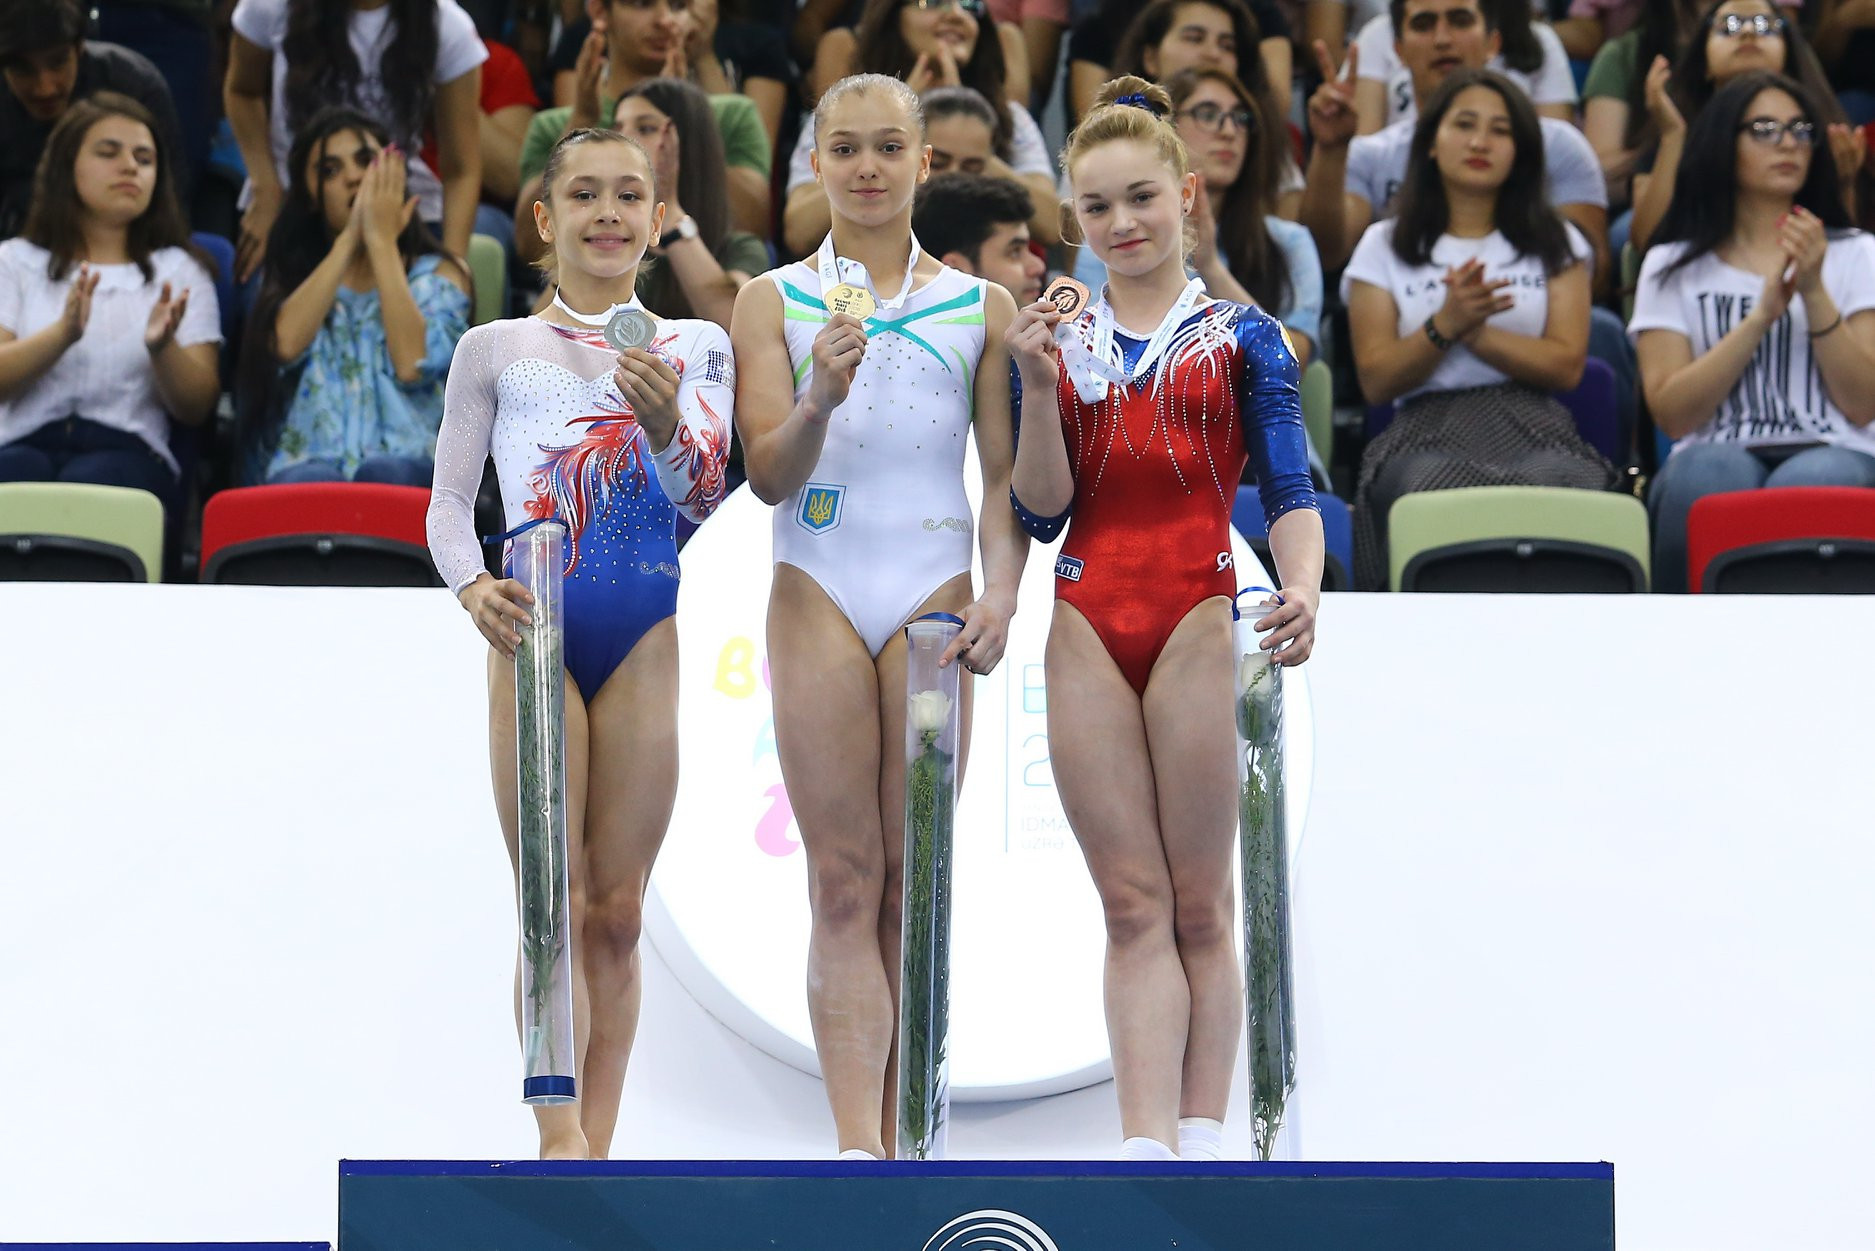 Russia and Ukraine top podiums at Buenos Aires 2018 gymnastics qualification event